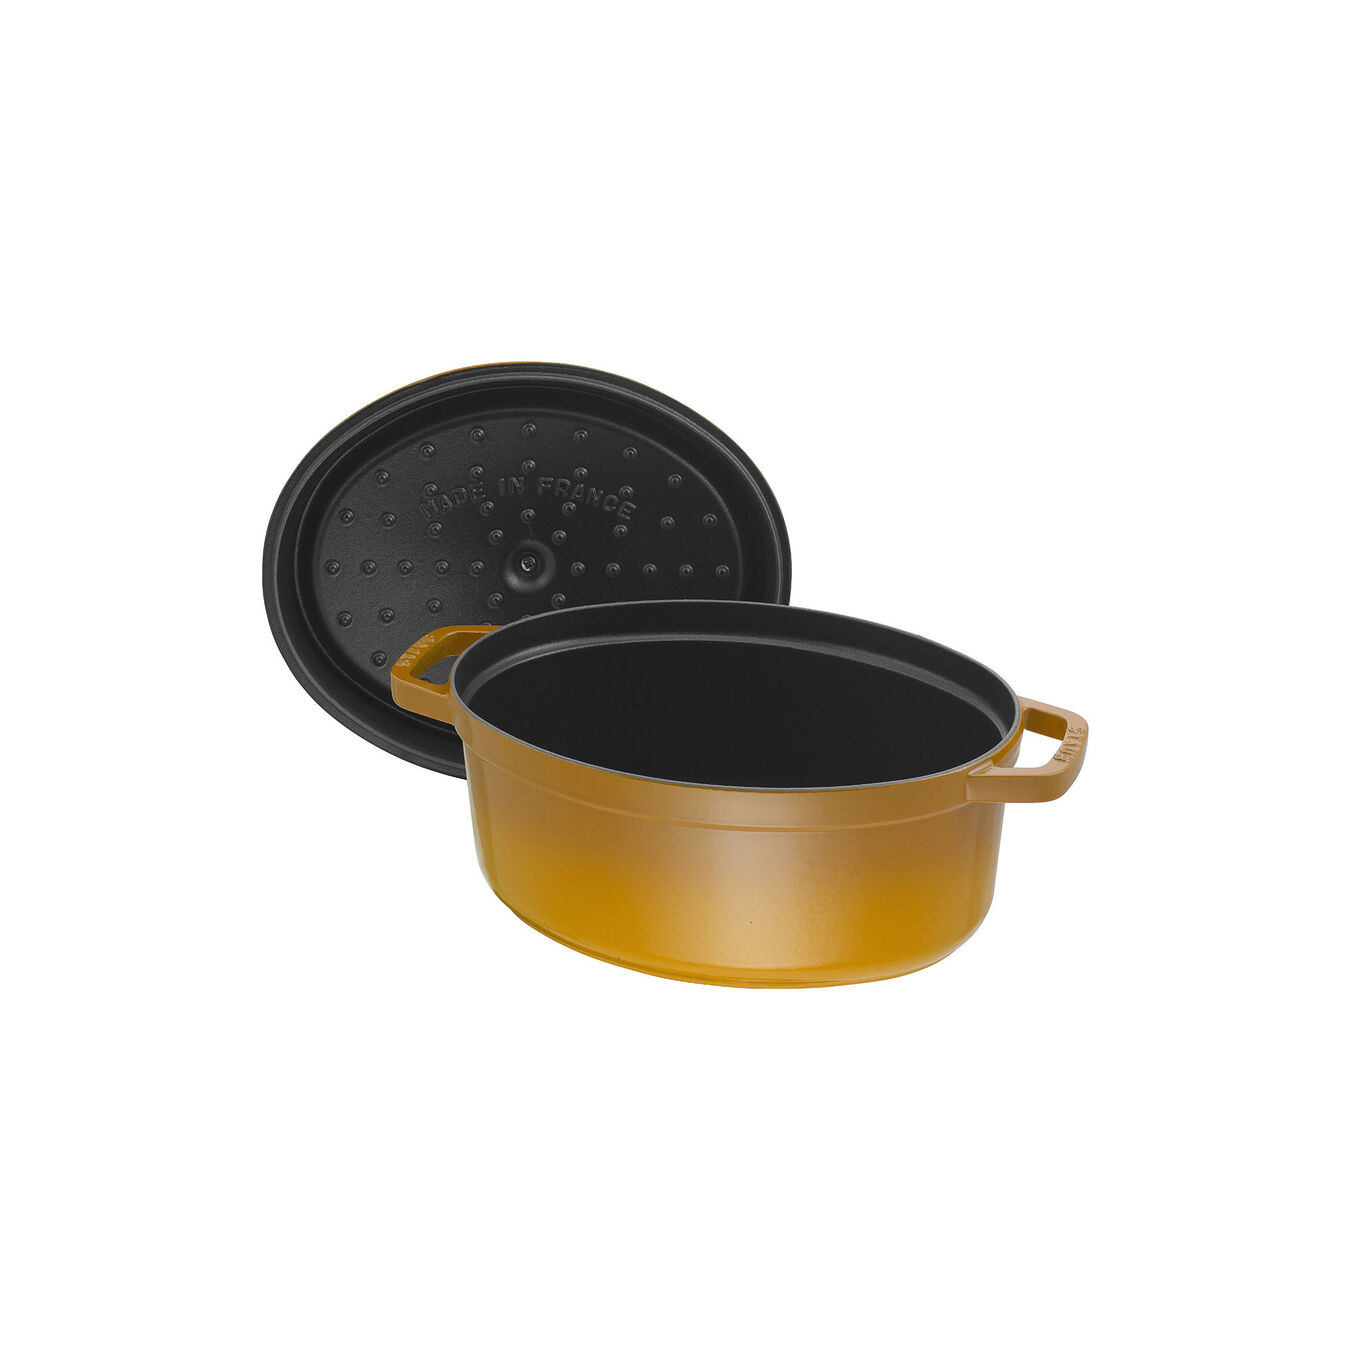 5.5 l Cast iron oval Cocotte, Mustard,,large 5